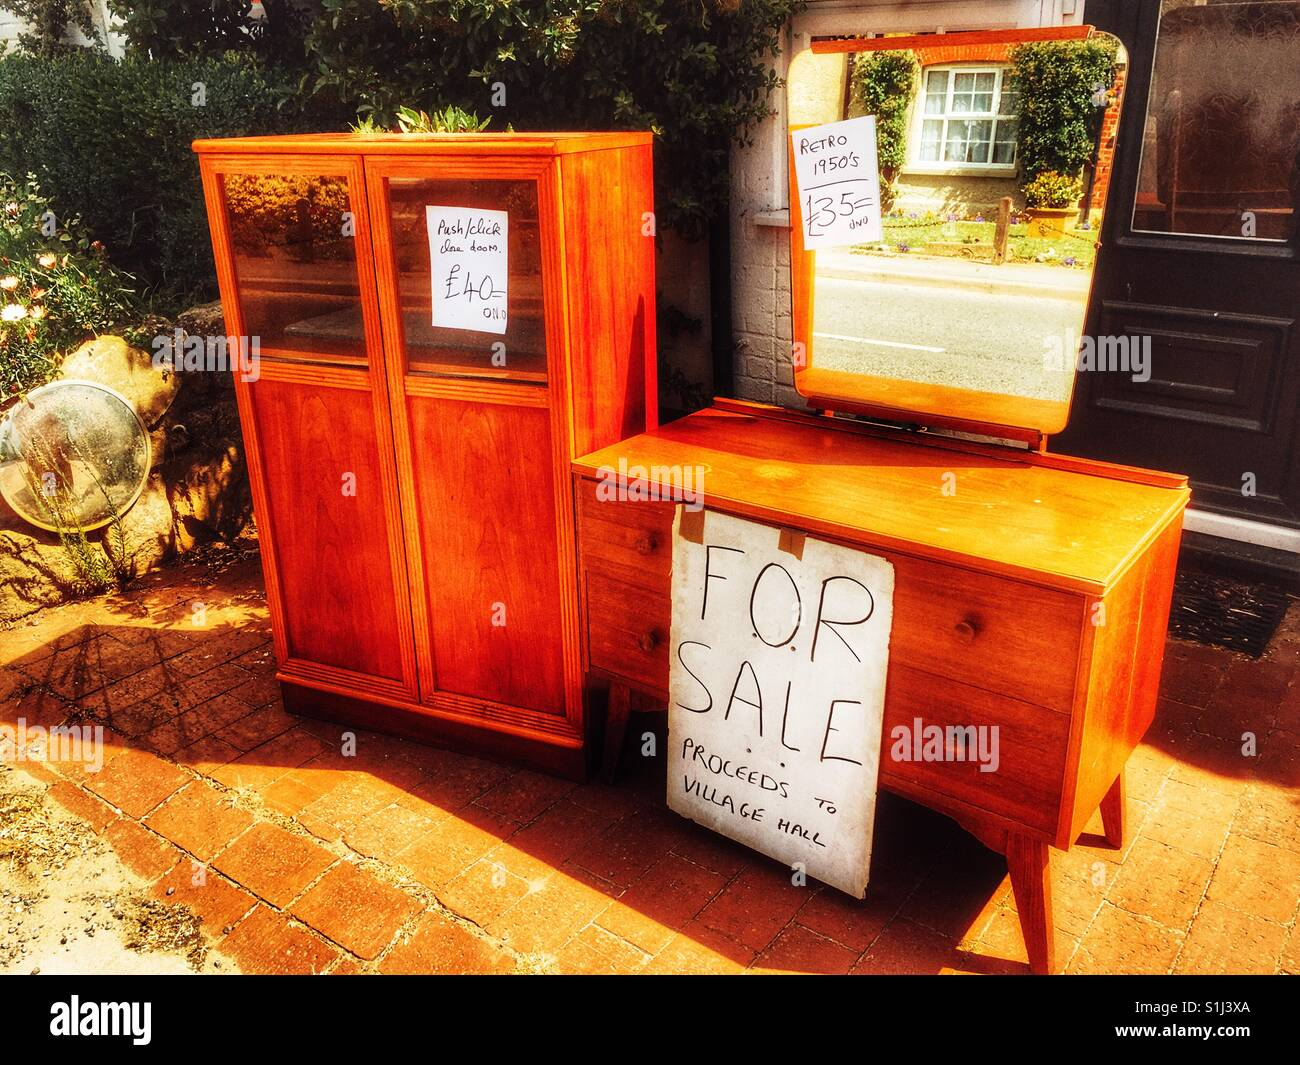 Secondhand Furniture For Sale Outside House   Stock Image